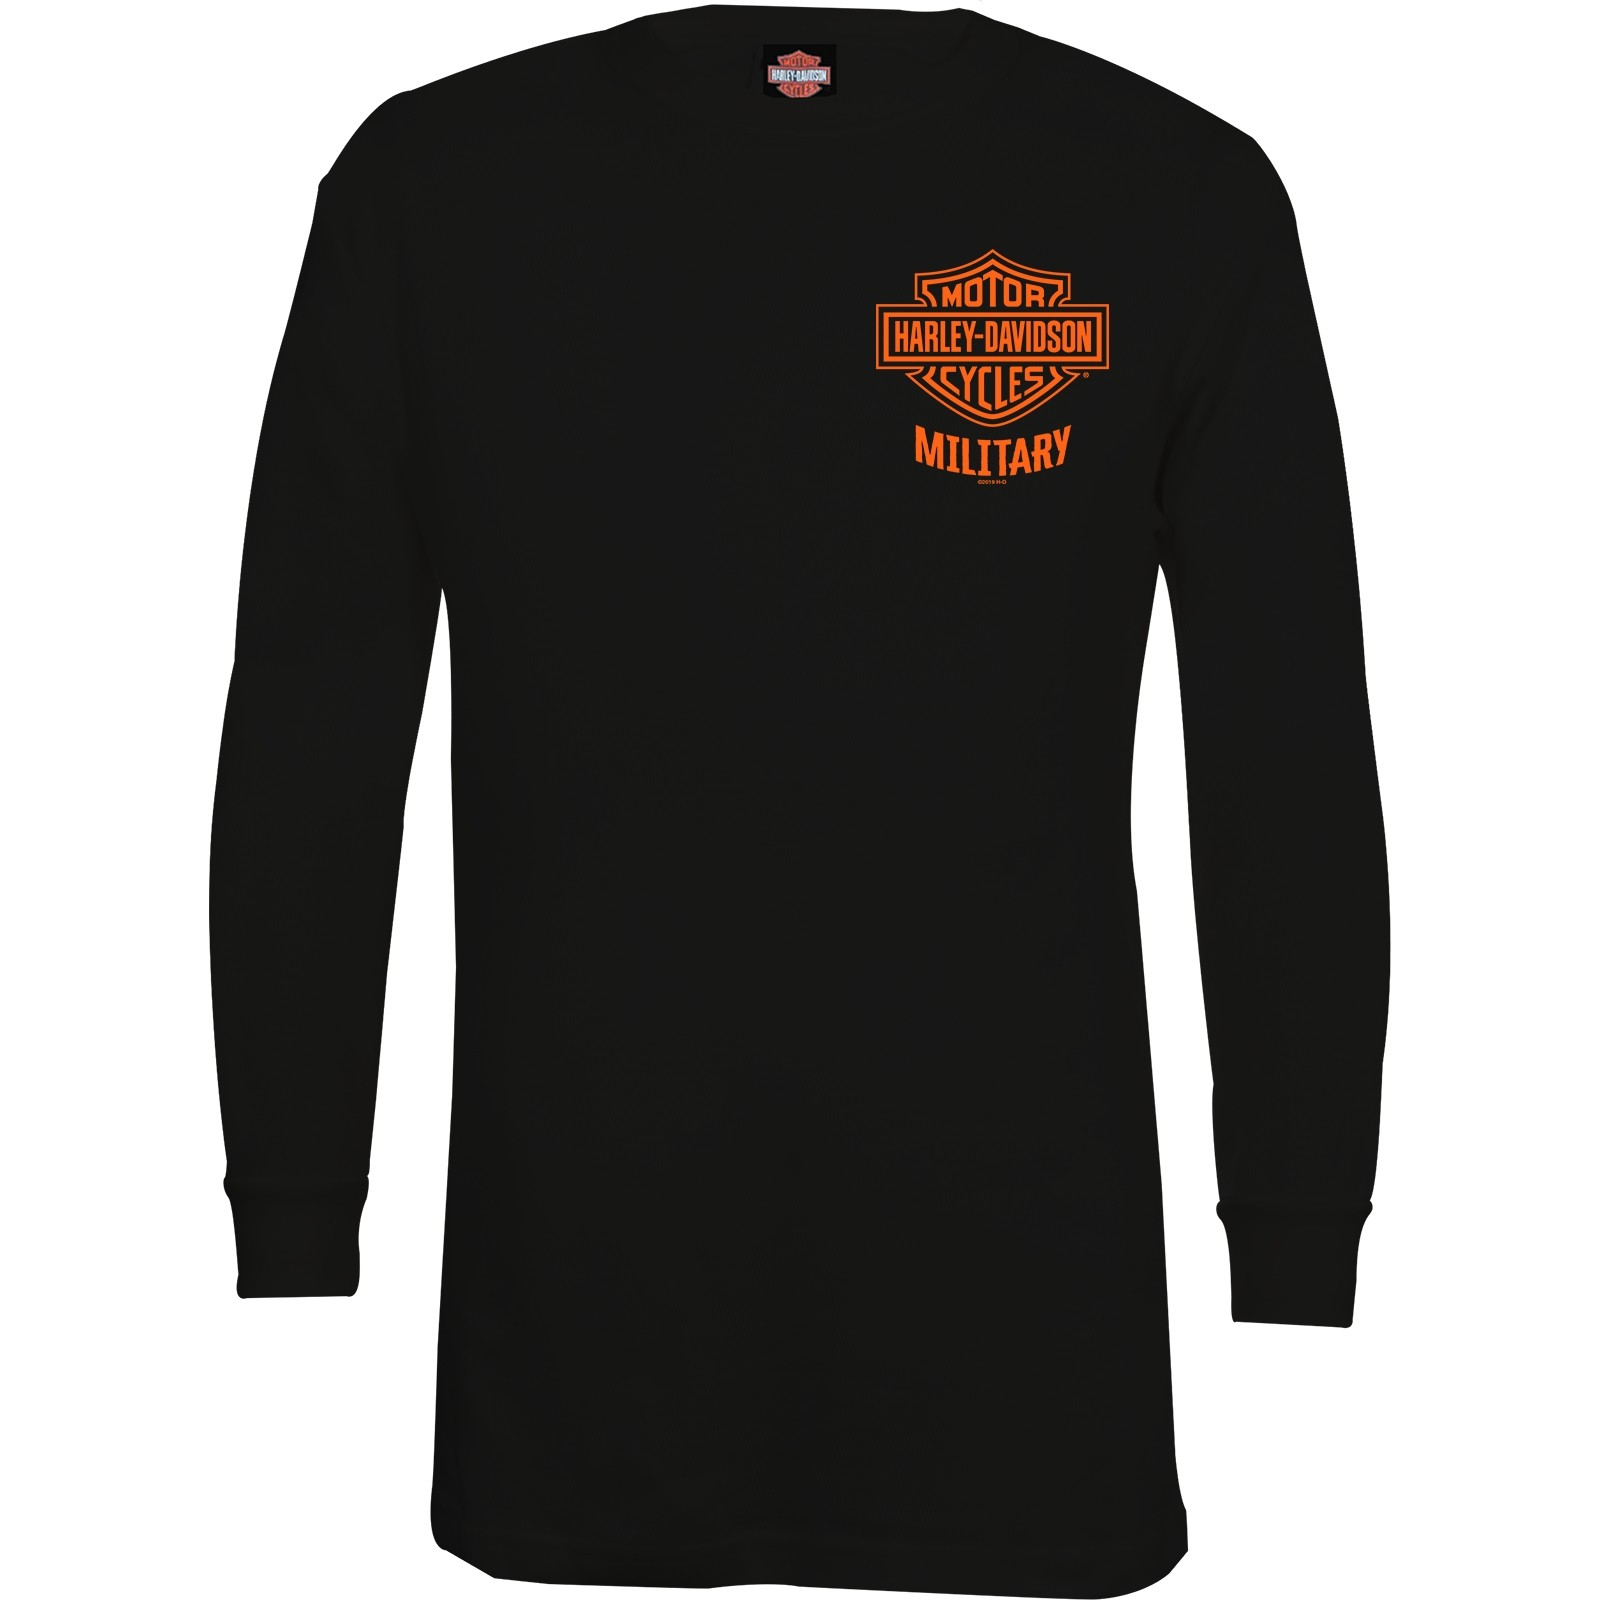 Men's Black Bar & Shield Long-Sleeve Graphic Thermal Shirt - Overseas Tour